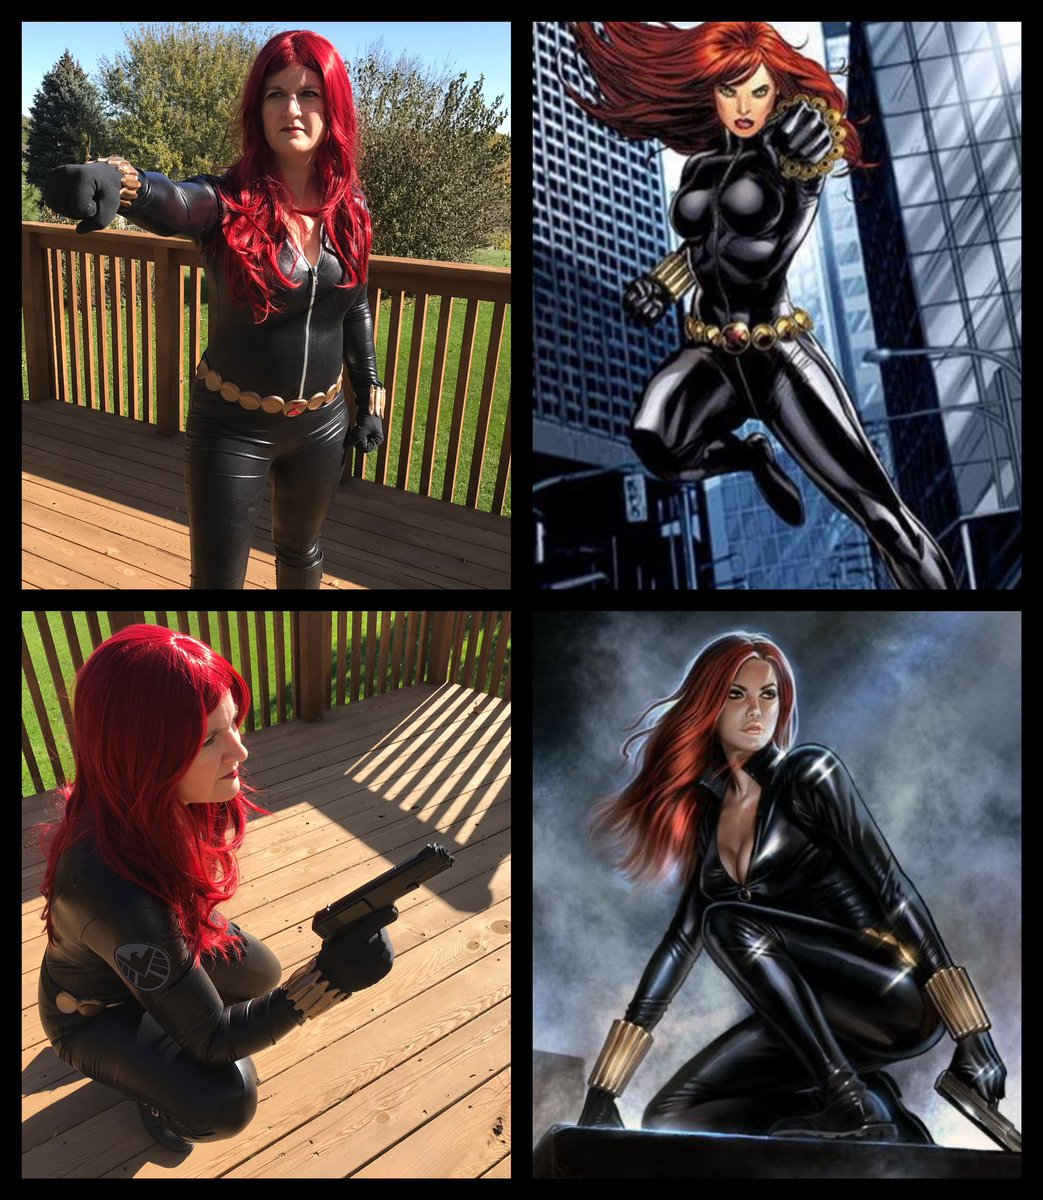 Cosplay vs. character My poses weren't quite right, but you get the idea. #BlackWidow <br>http://pic.twitter.com/3gLOM96XPs